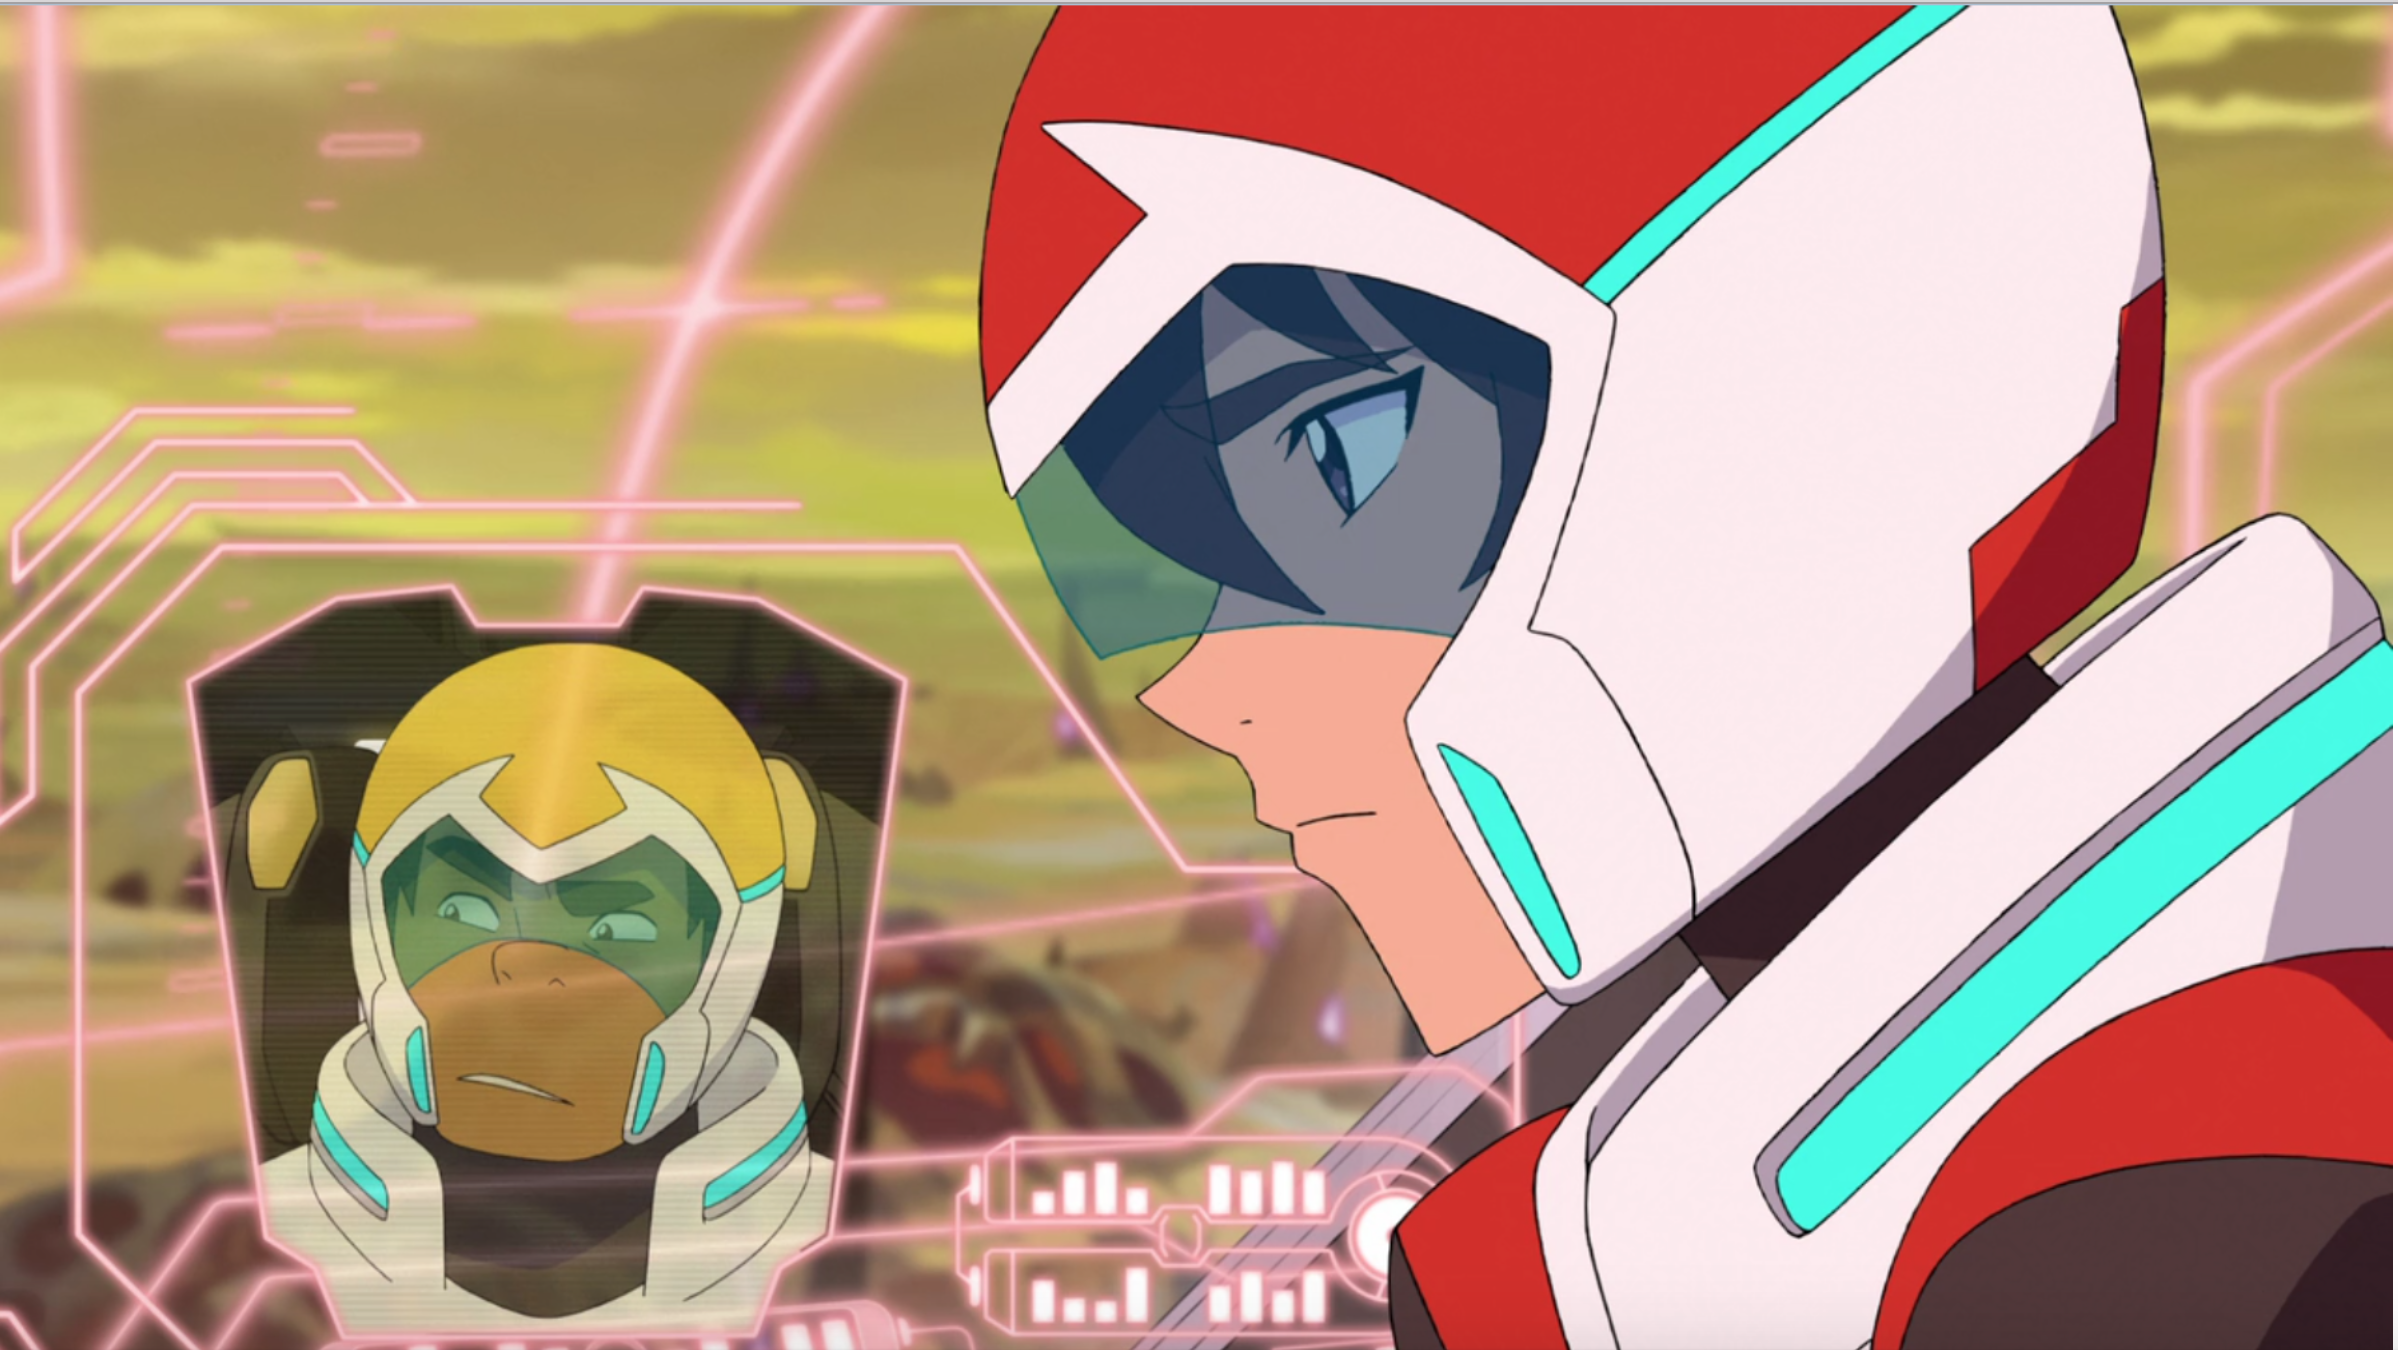 Keith talking to hunk in their lions from voltron legendary keith talking to hunk in their lions from voltron legendary defender biocorpaavc